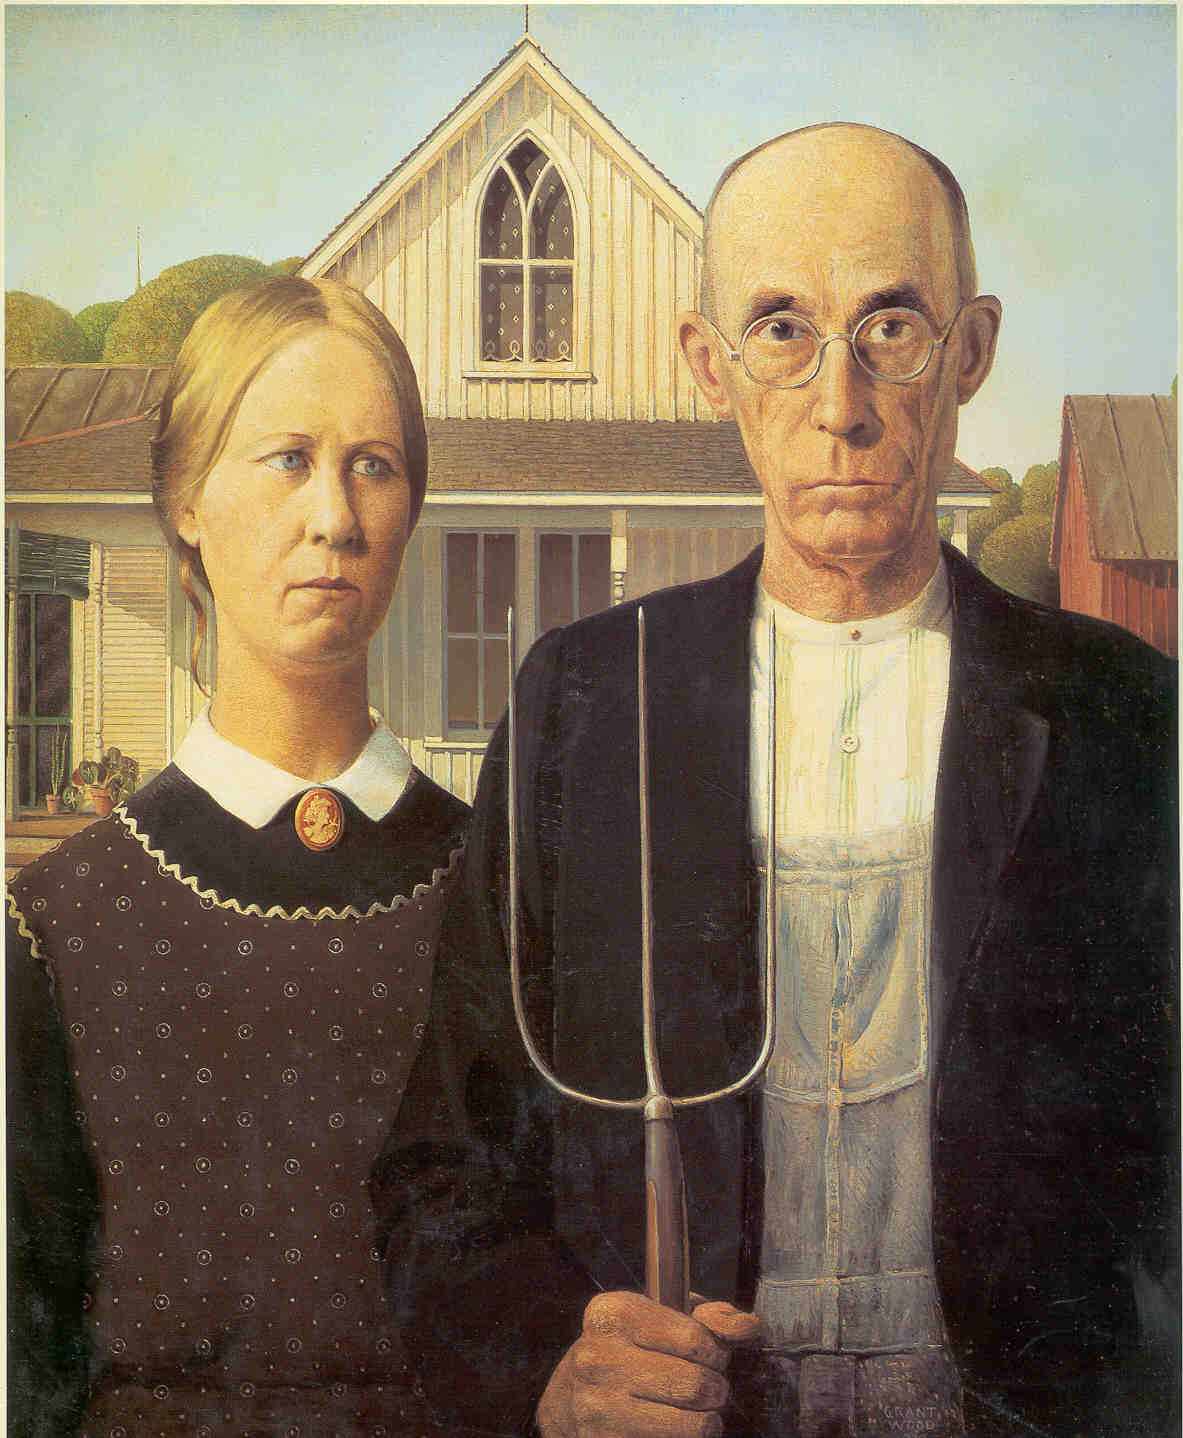 """grant wood and the american gothic Had grant wood not made the painting """"american gothic"""" (1930), there would not be a grant wood retrospective now at the whitney museum this would be a pity, because the show fascinates as a plunge into certain deliriums of the united states in the nineteen-thirties, notably a culture war between cosmopolitan and nativist sensibilities."""